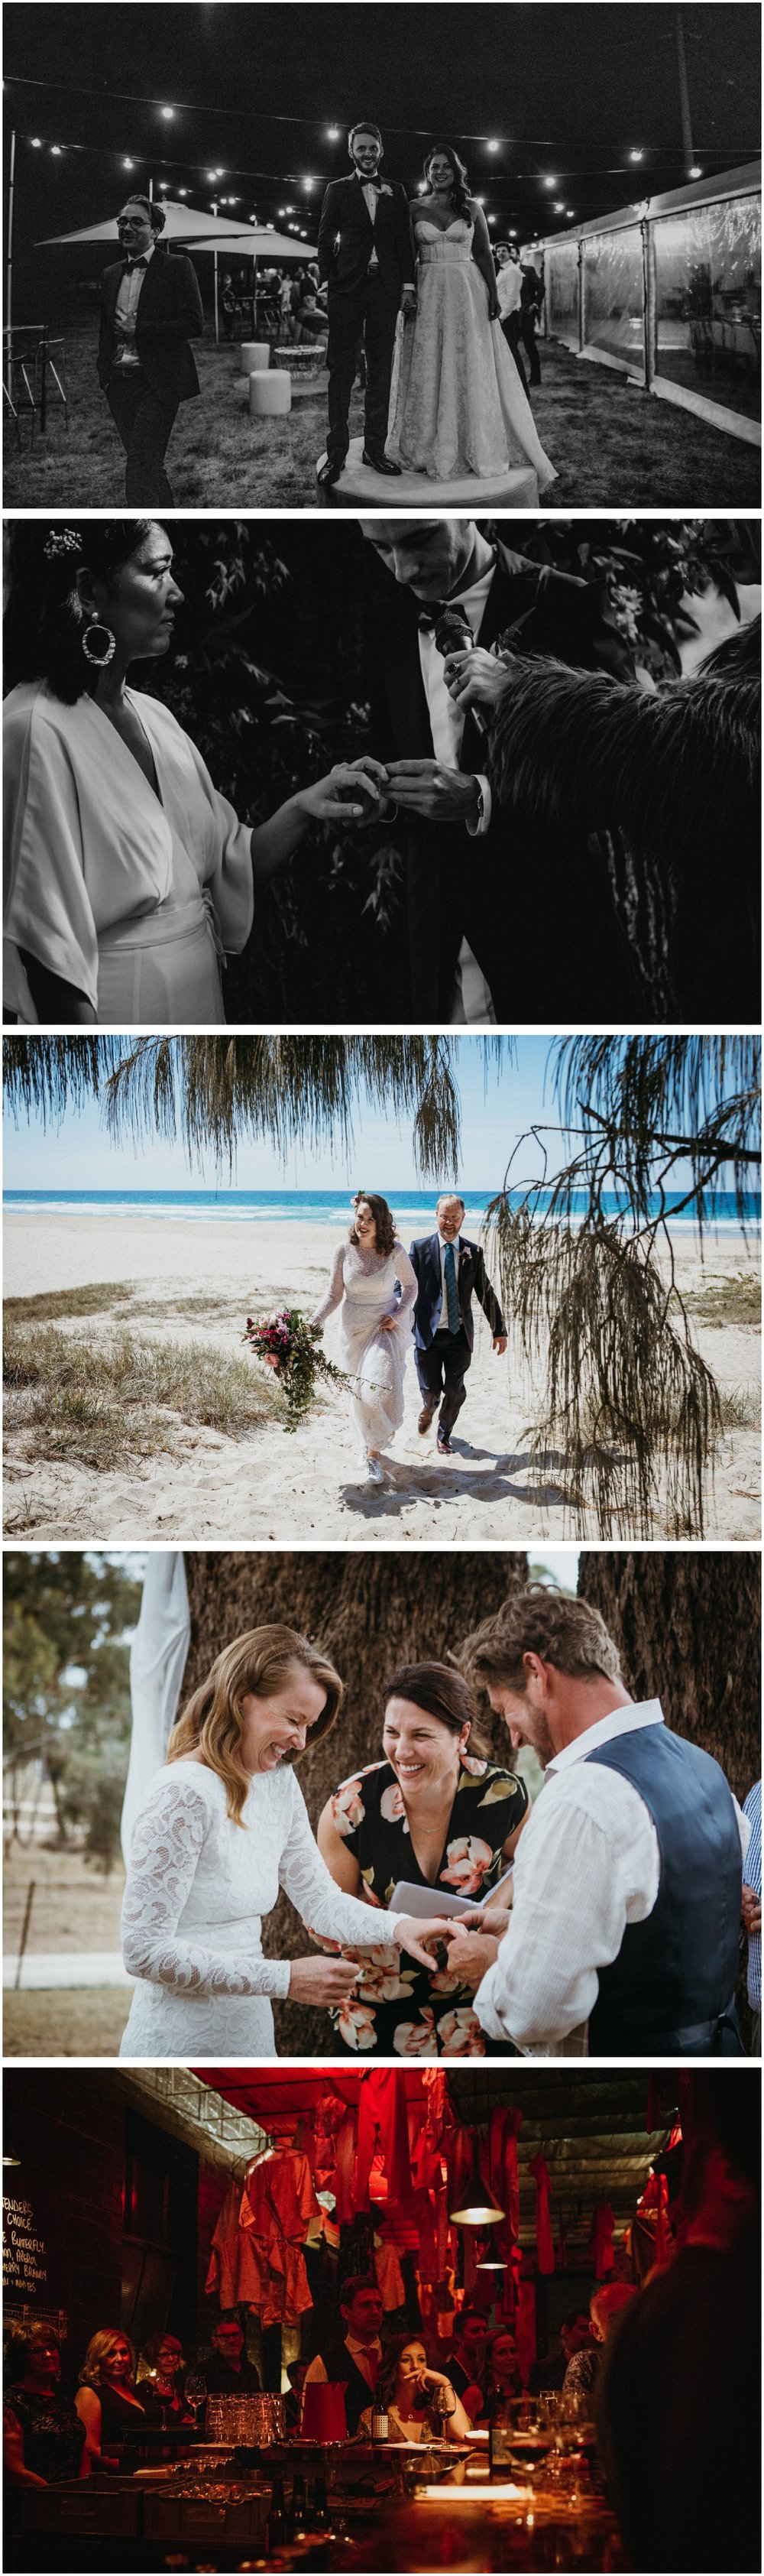 Melbourne Wedding Photographer - 2018 in review -185A8077.jpg